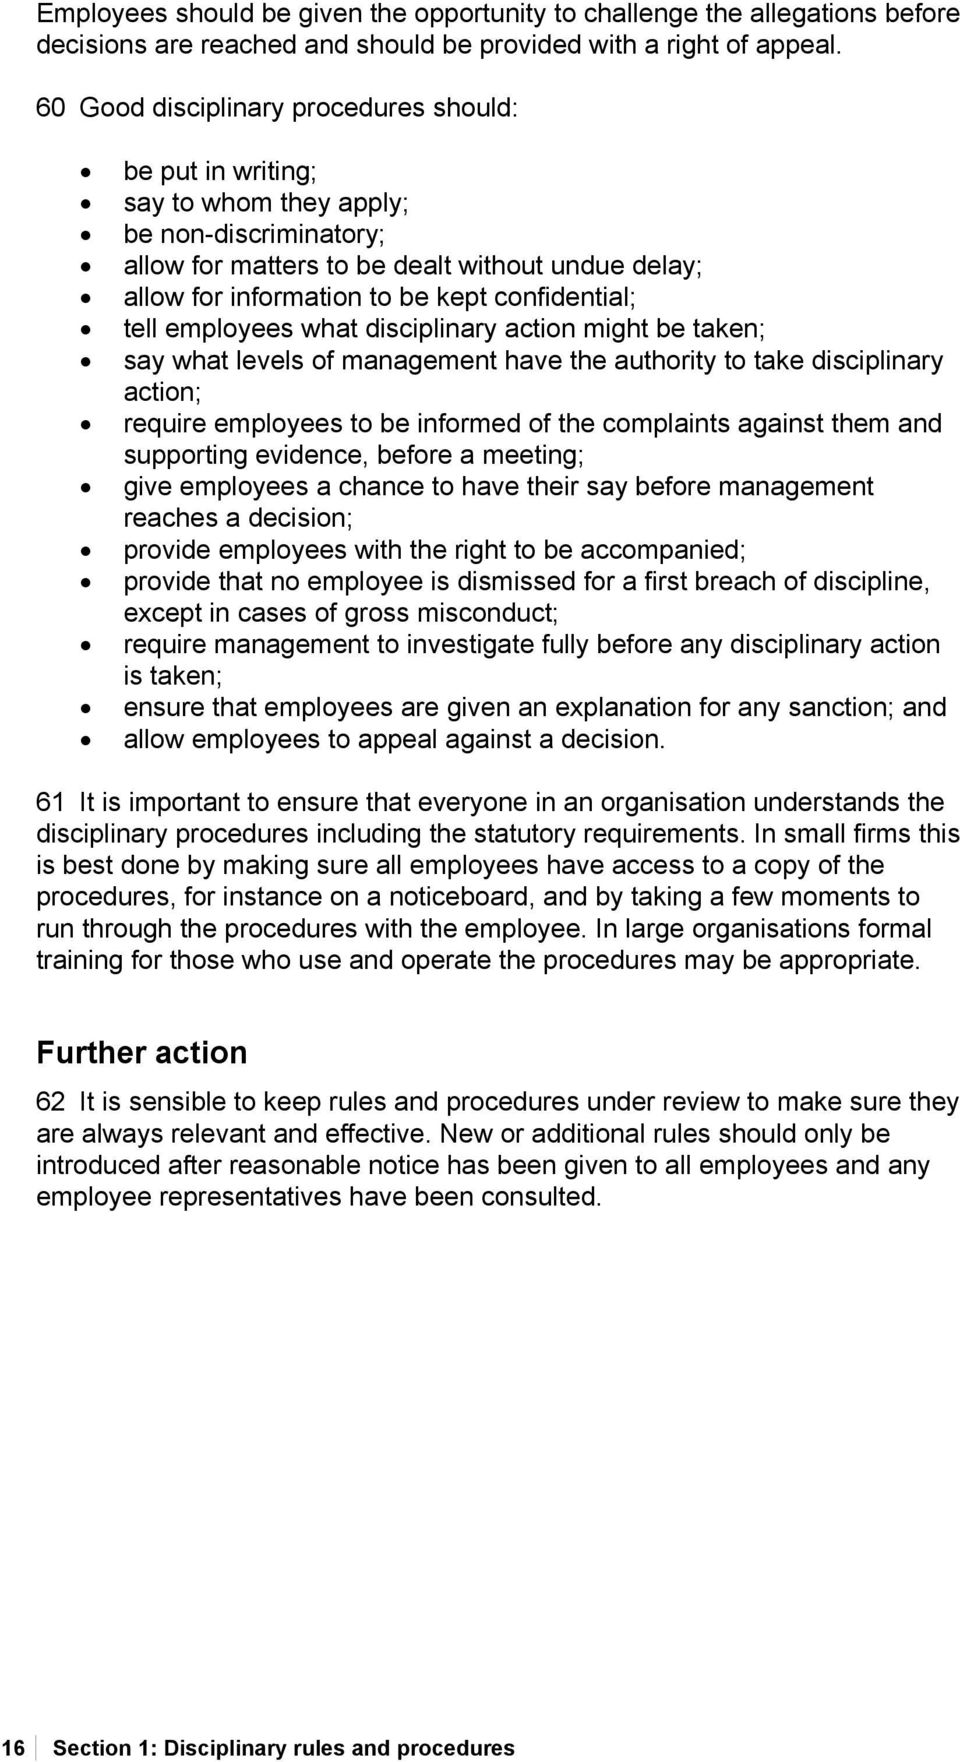 confidential; tell employees what disciplinary action might be taken; say what levels of management have the authority to take disciplinary action; require employees to be informed of the complaints